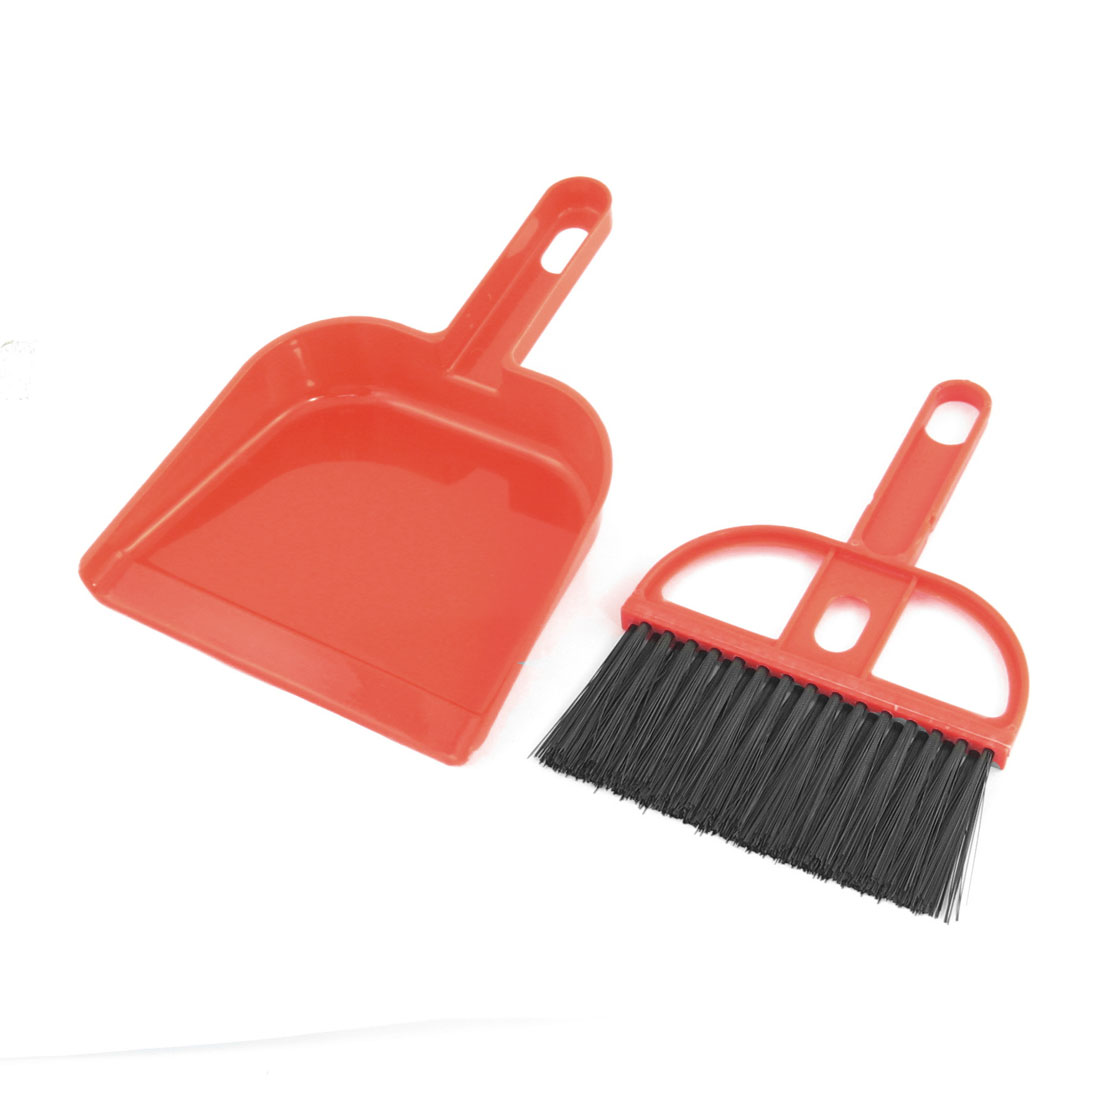 garderobe table cleaning whisk broom dustpan tools red set